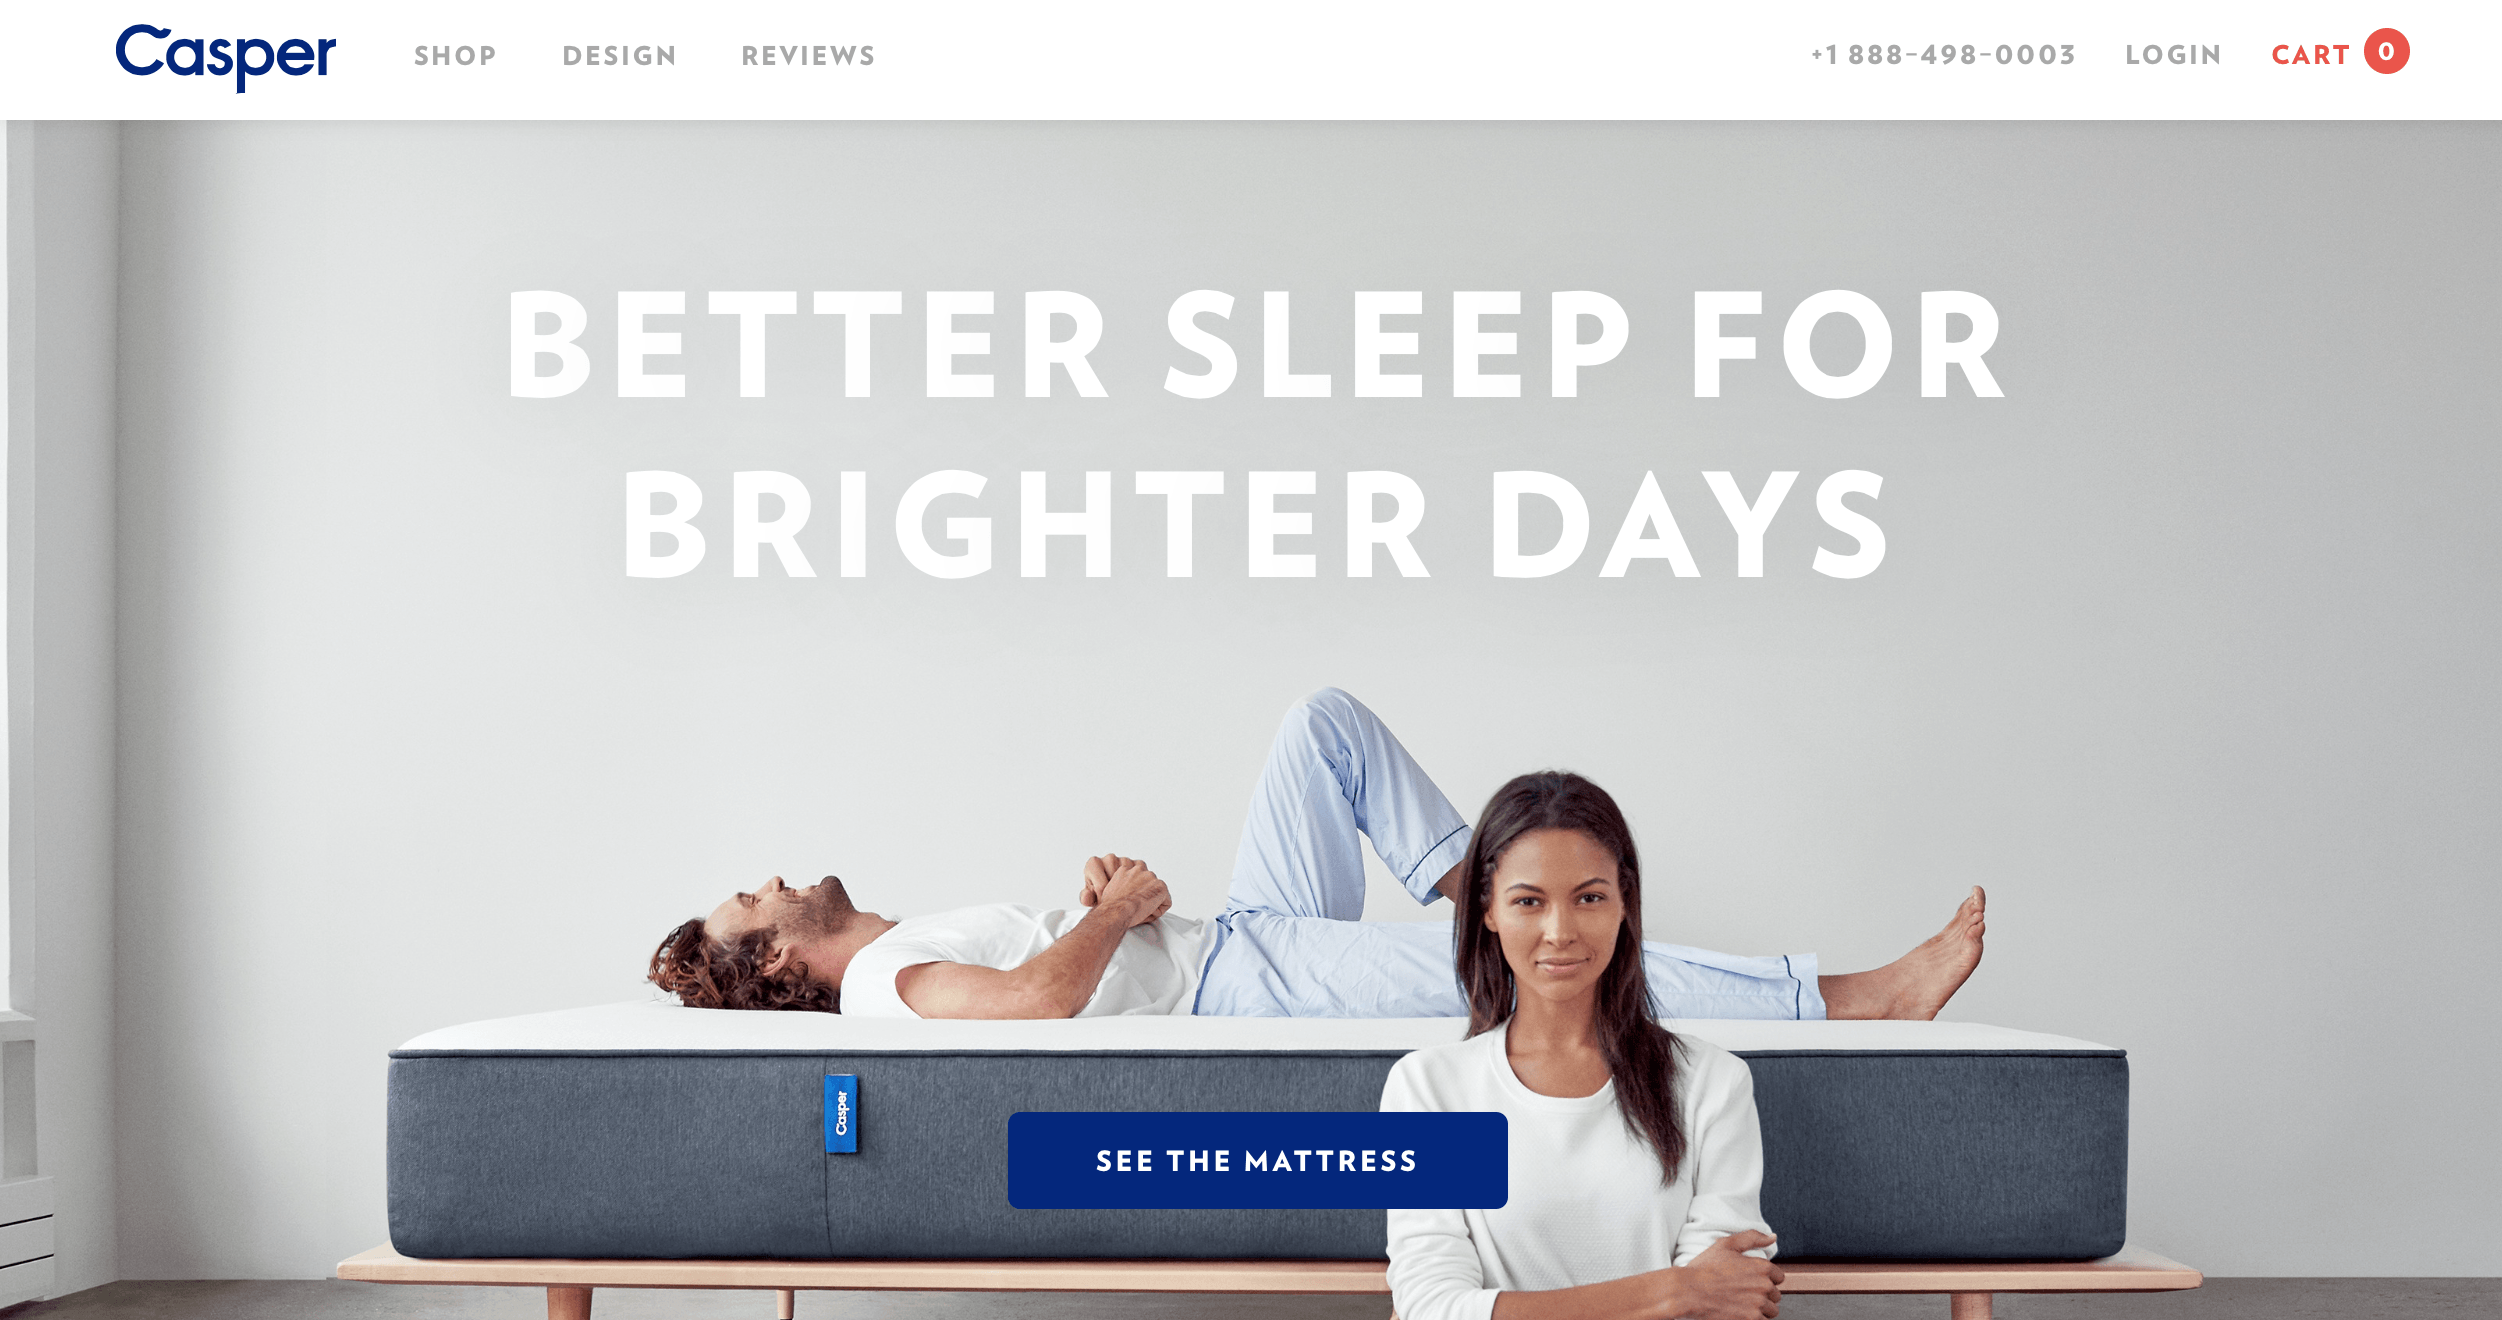 Casper Mattress Landing Page Rahul Ghosh Digital